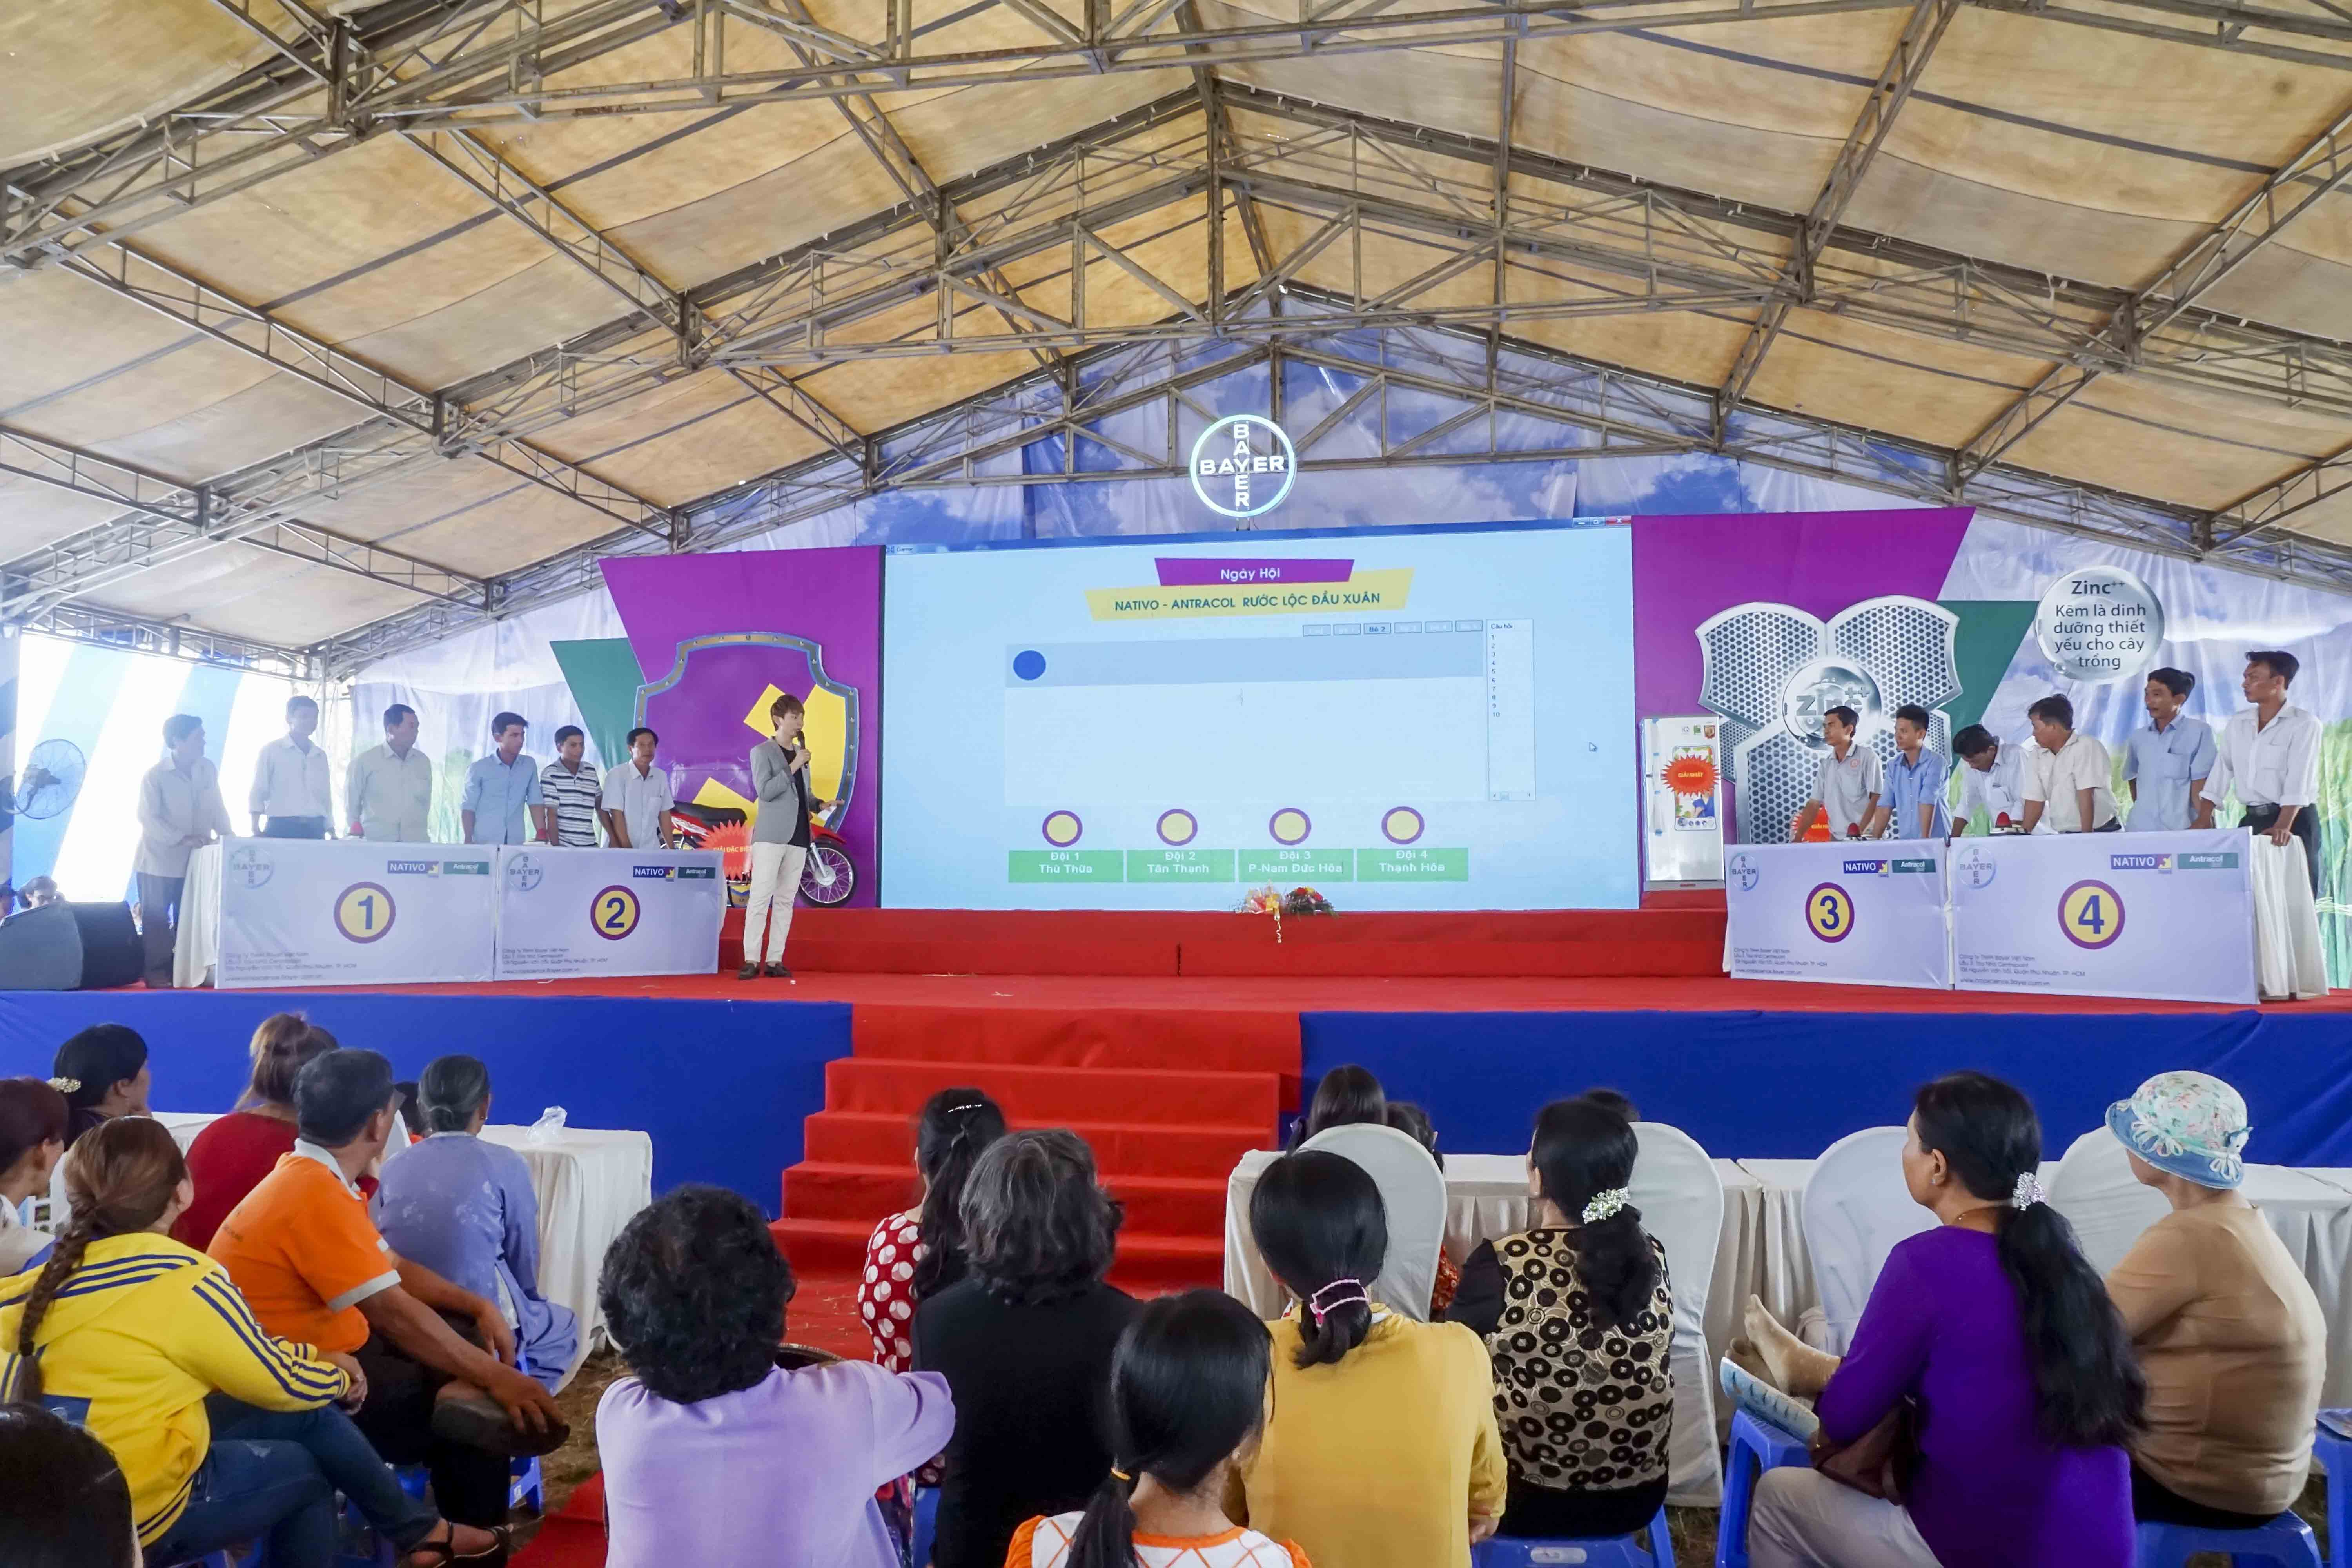 Game Festival Nativo – Antracol tại Long An